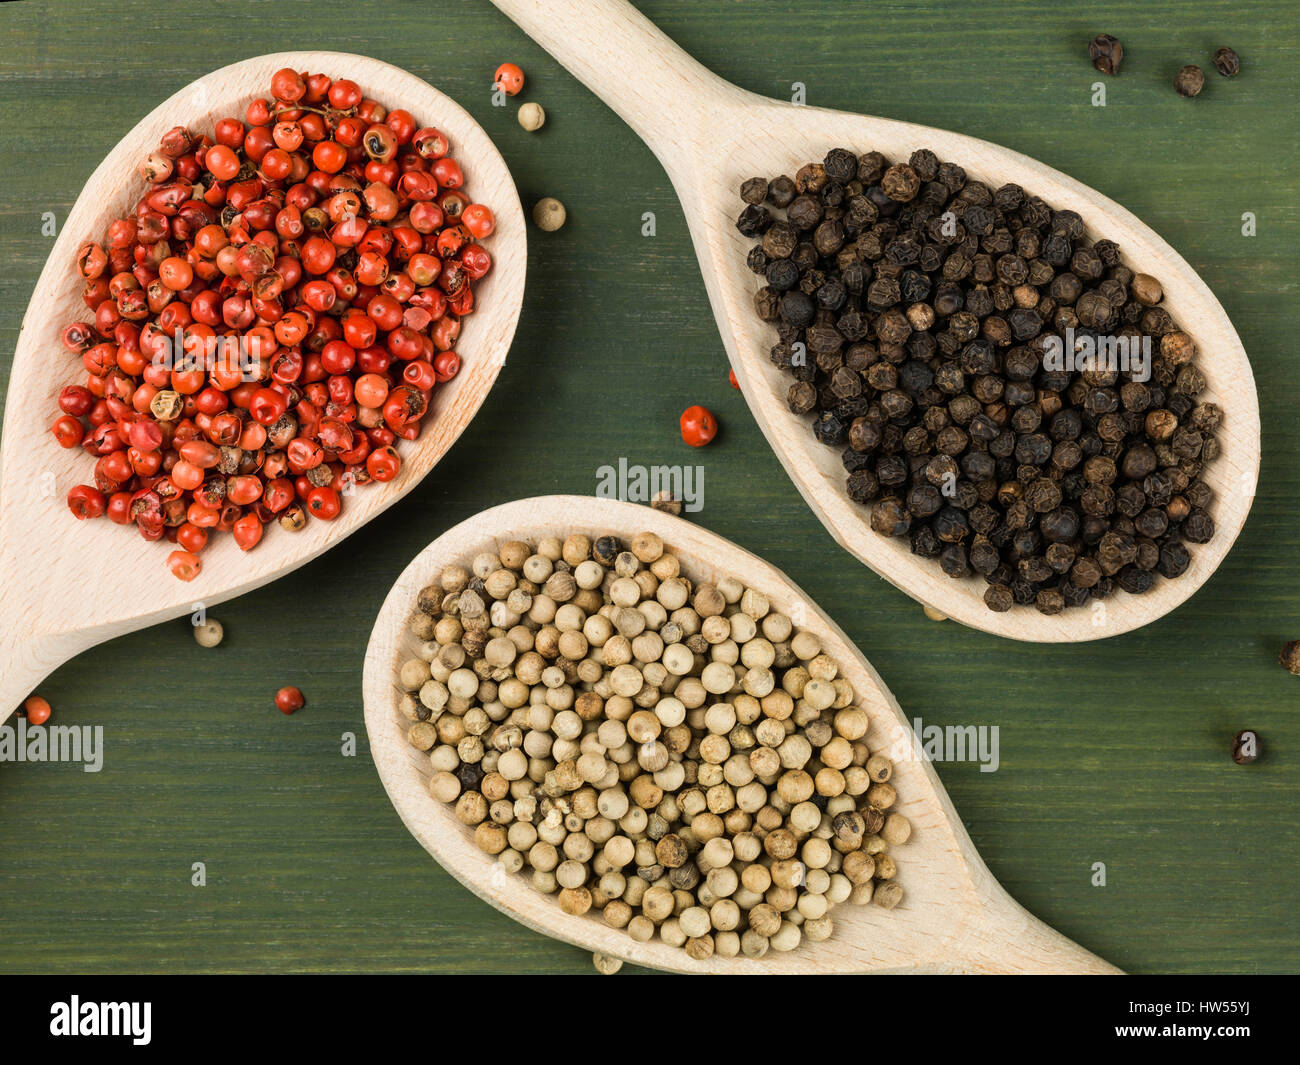 Whole Red White and Black Pepper Corns Against a Green Background - Stock Image